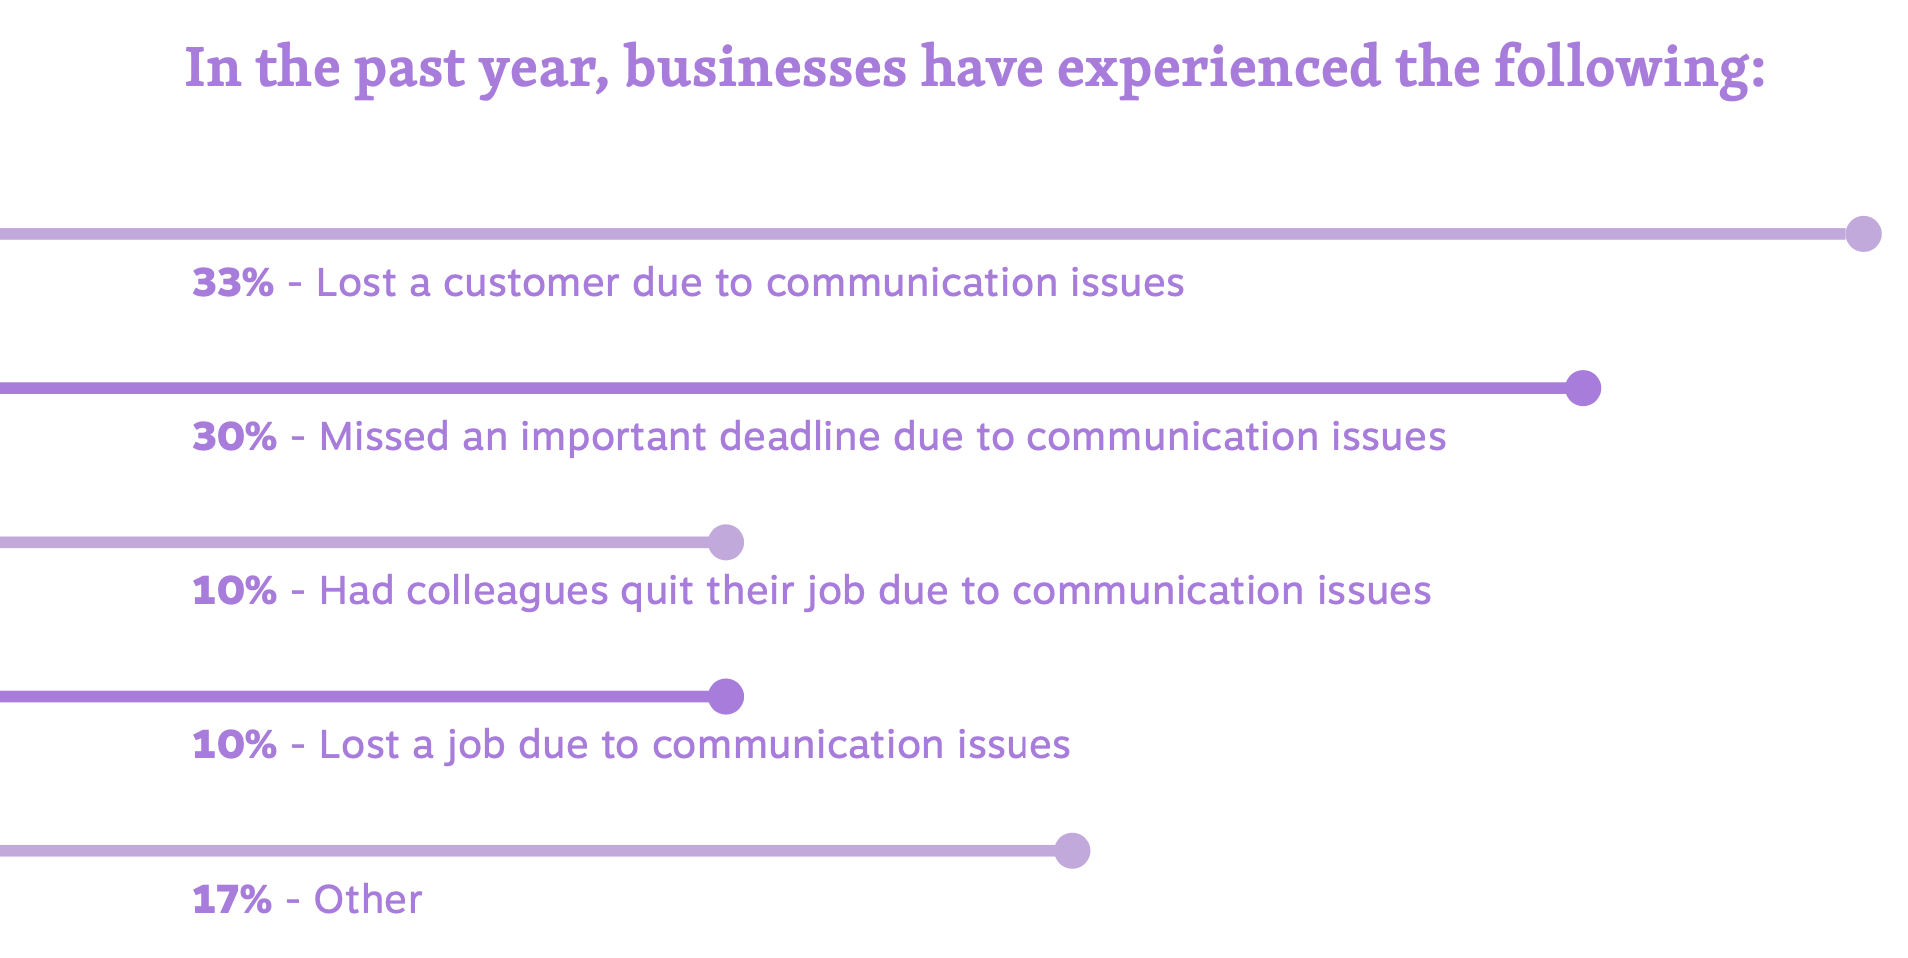 Business Communication Failures in 2020